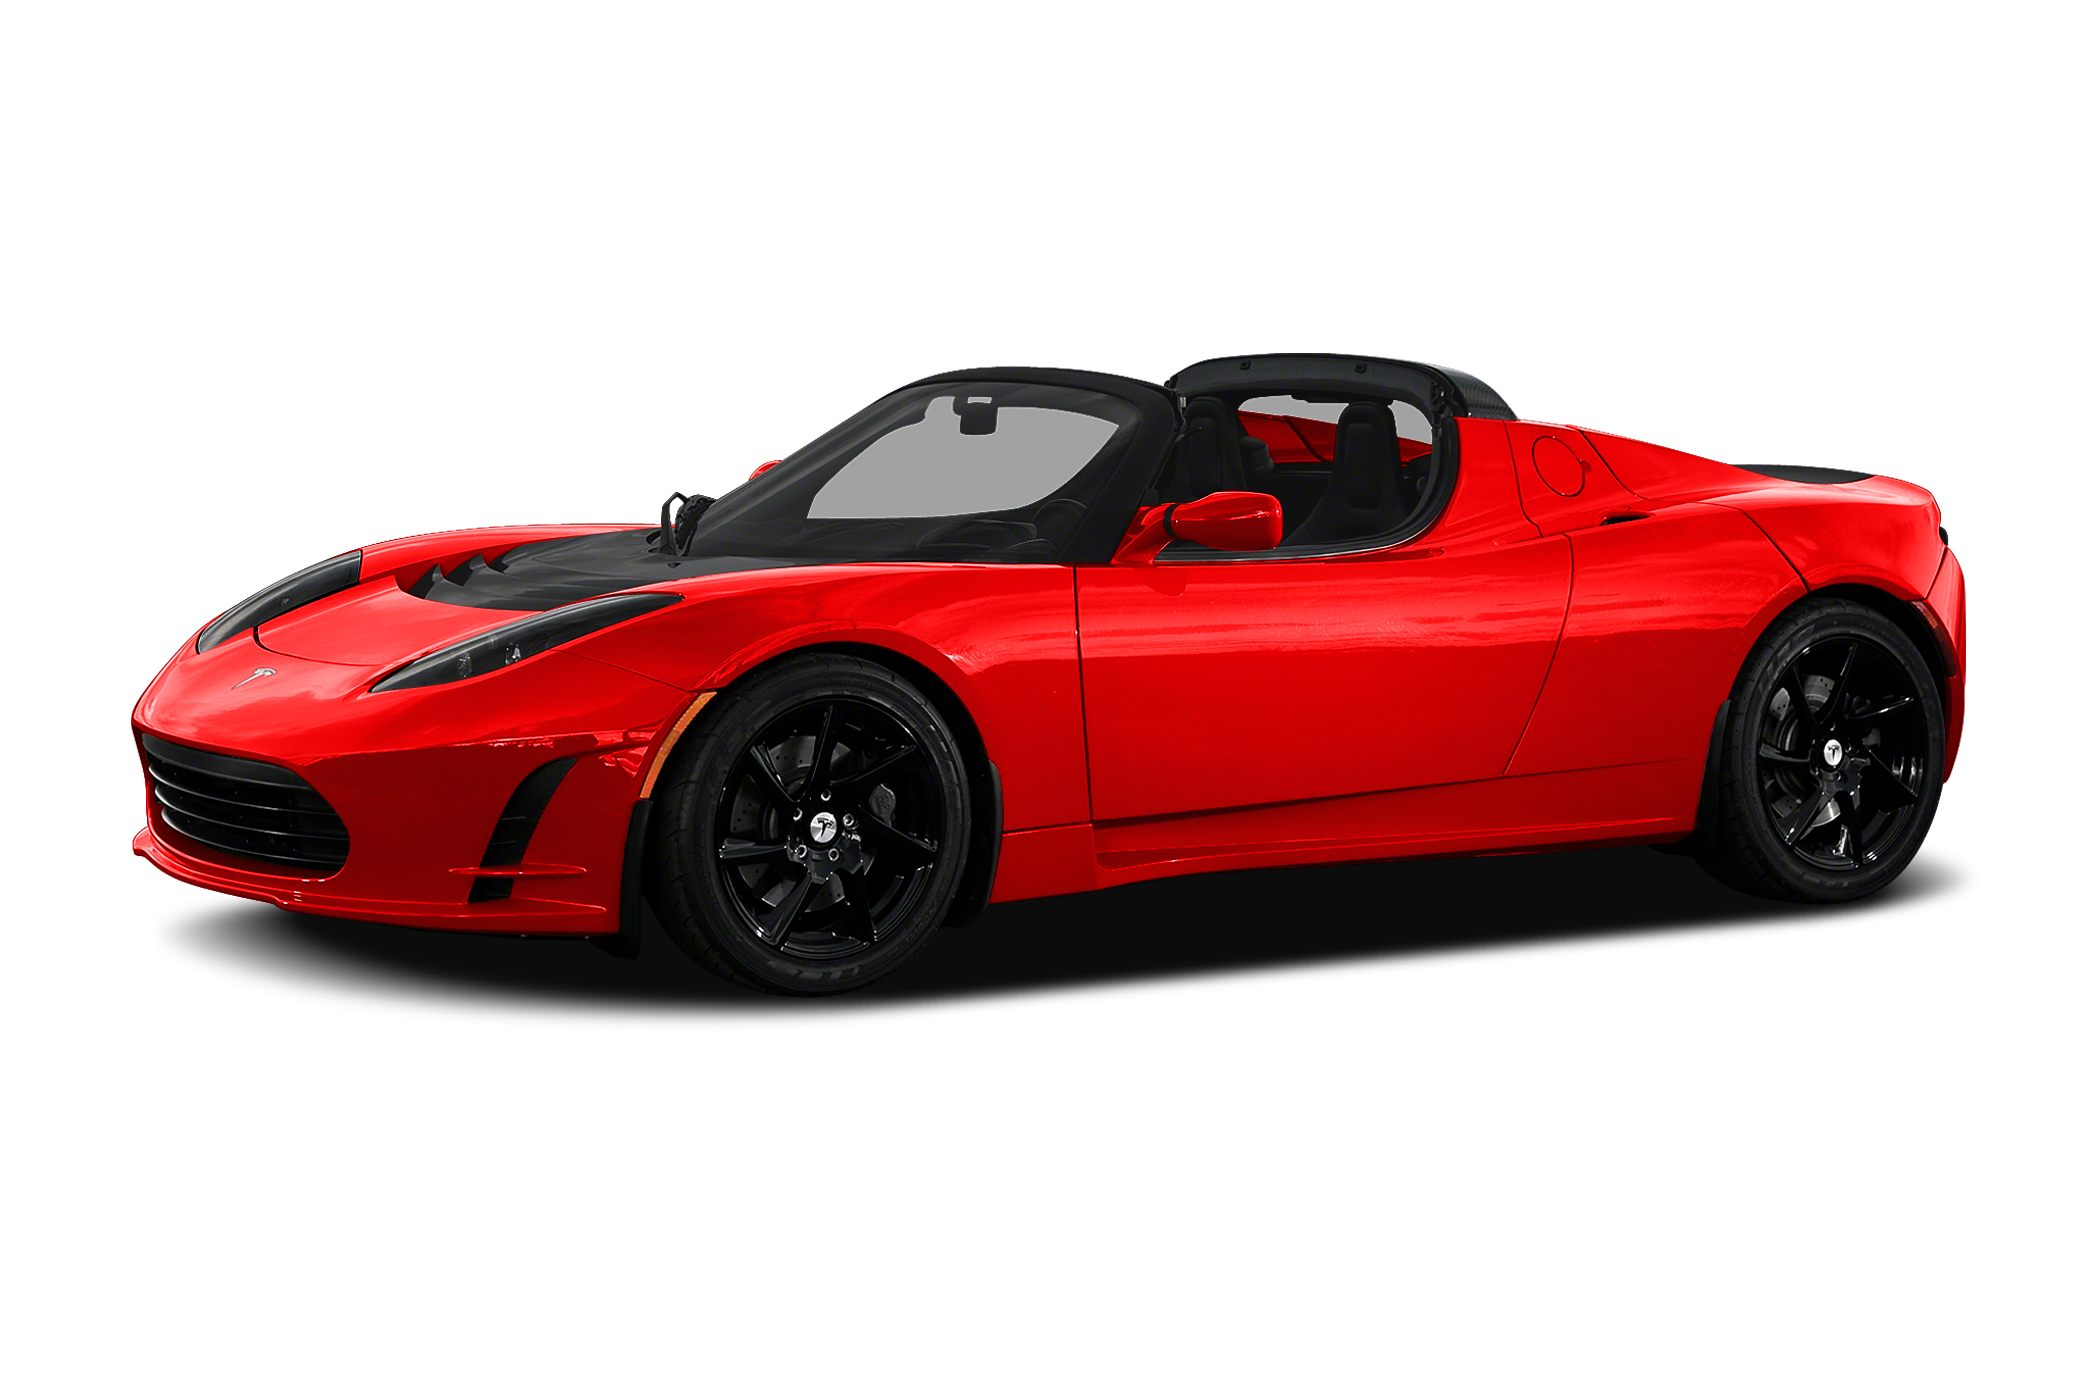 Tesla Roadster News, Photos and Buying Information - Autoblog